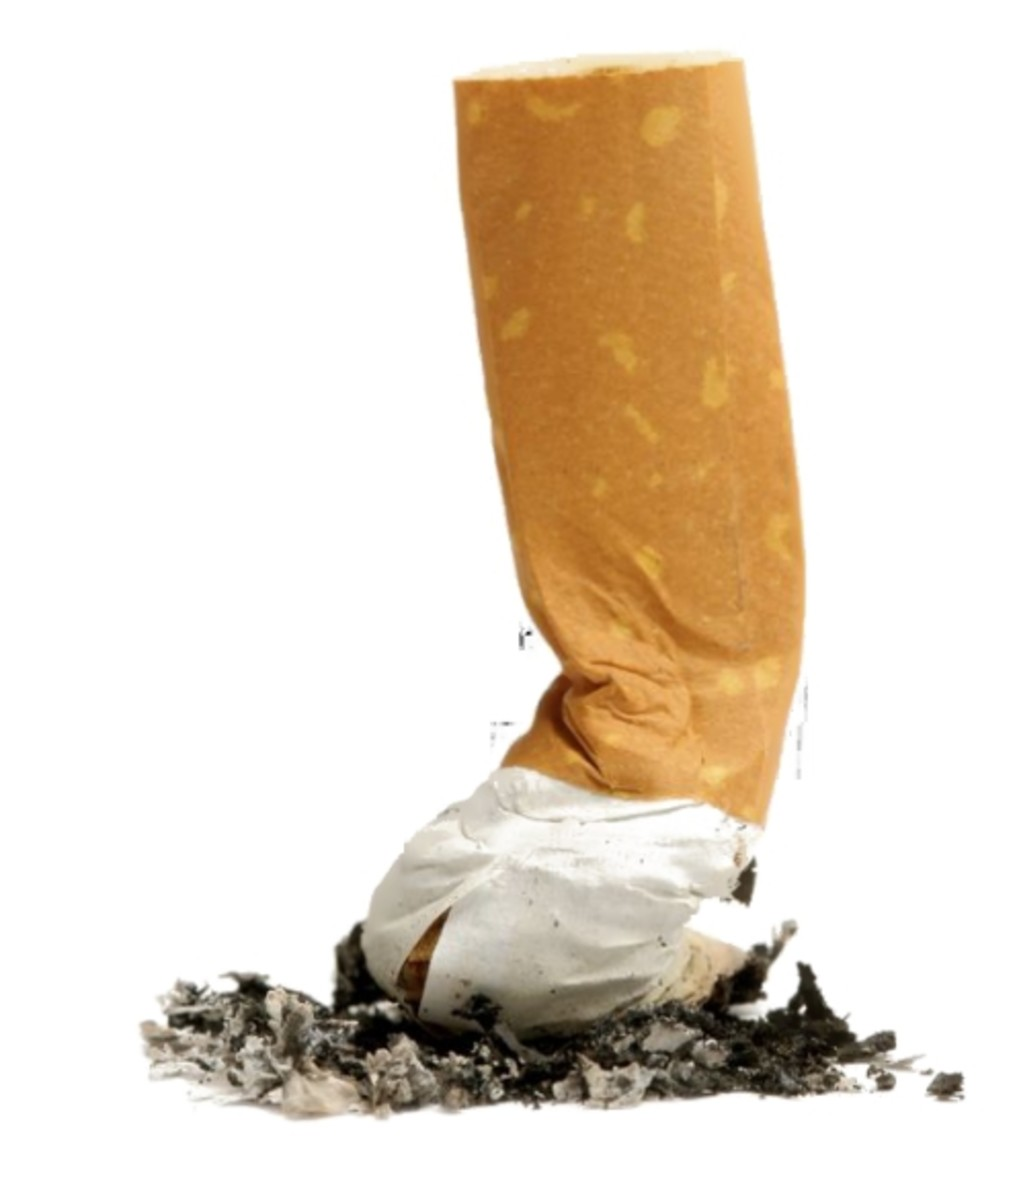 the-who-what-and-why-of-quitting-smoking